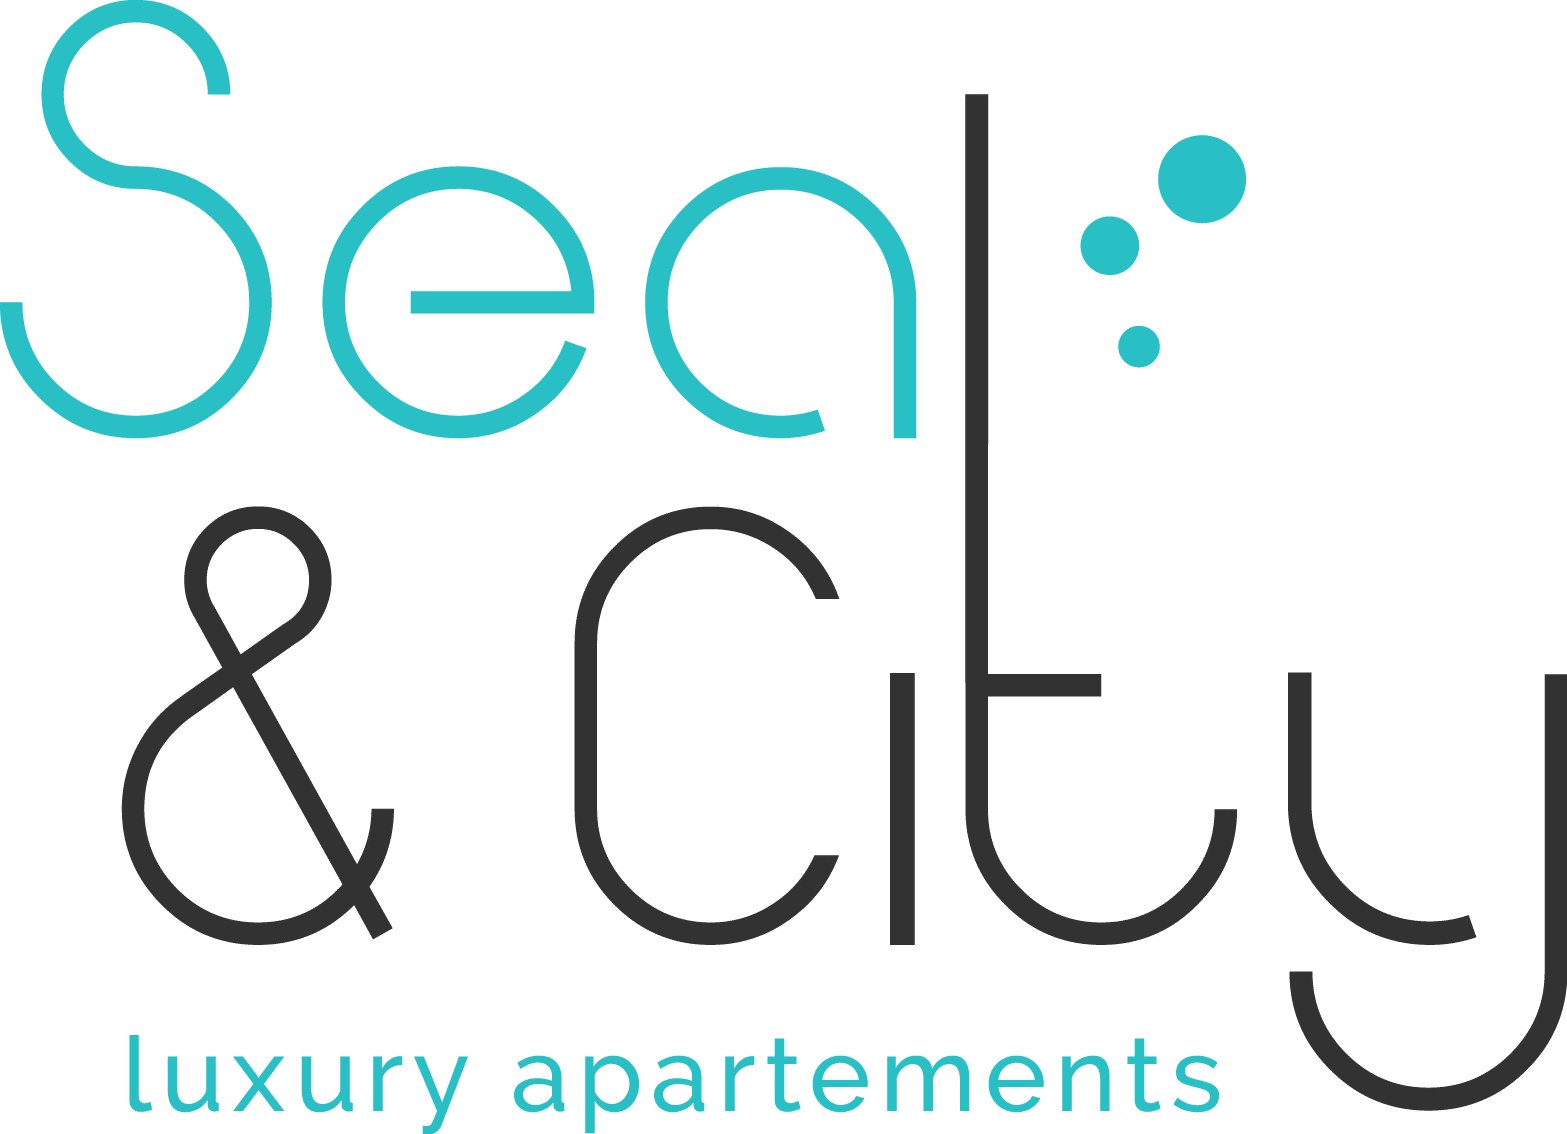 Sea and city luxury apartments